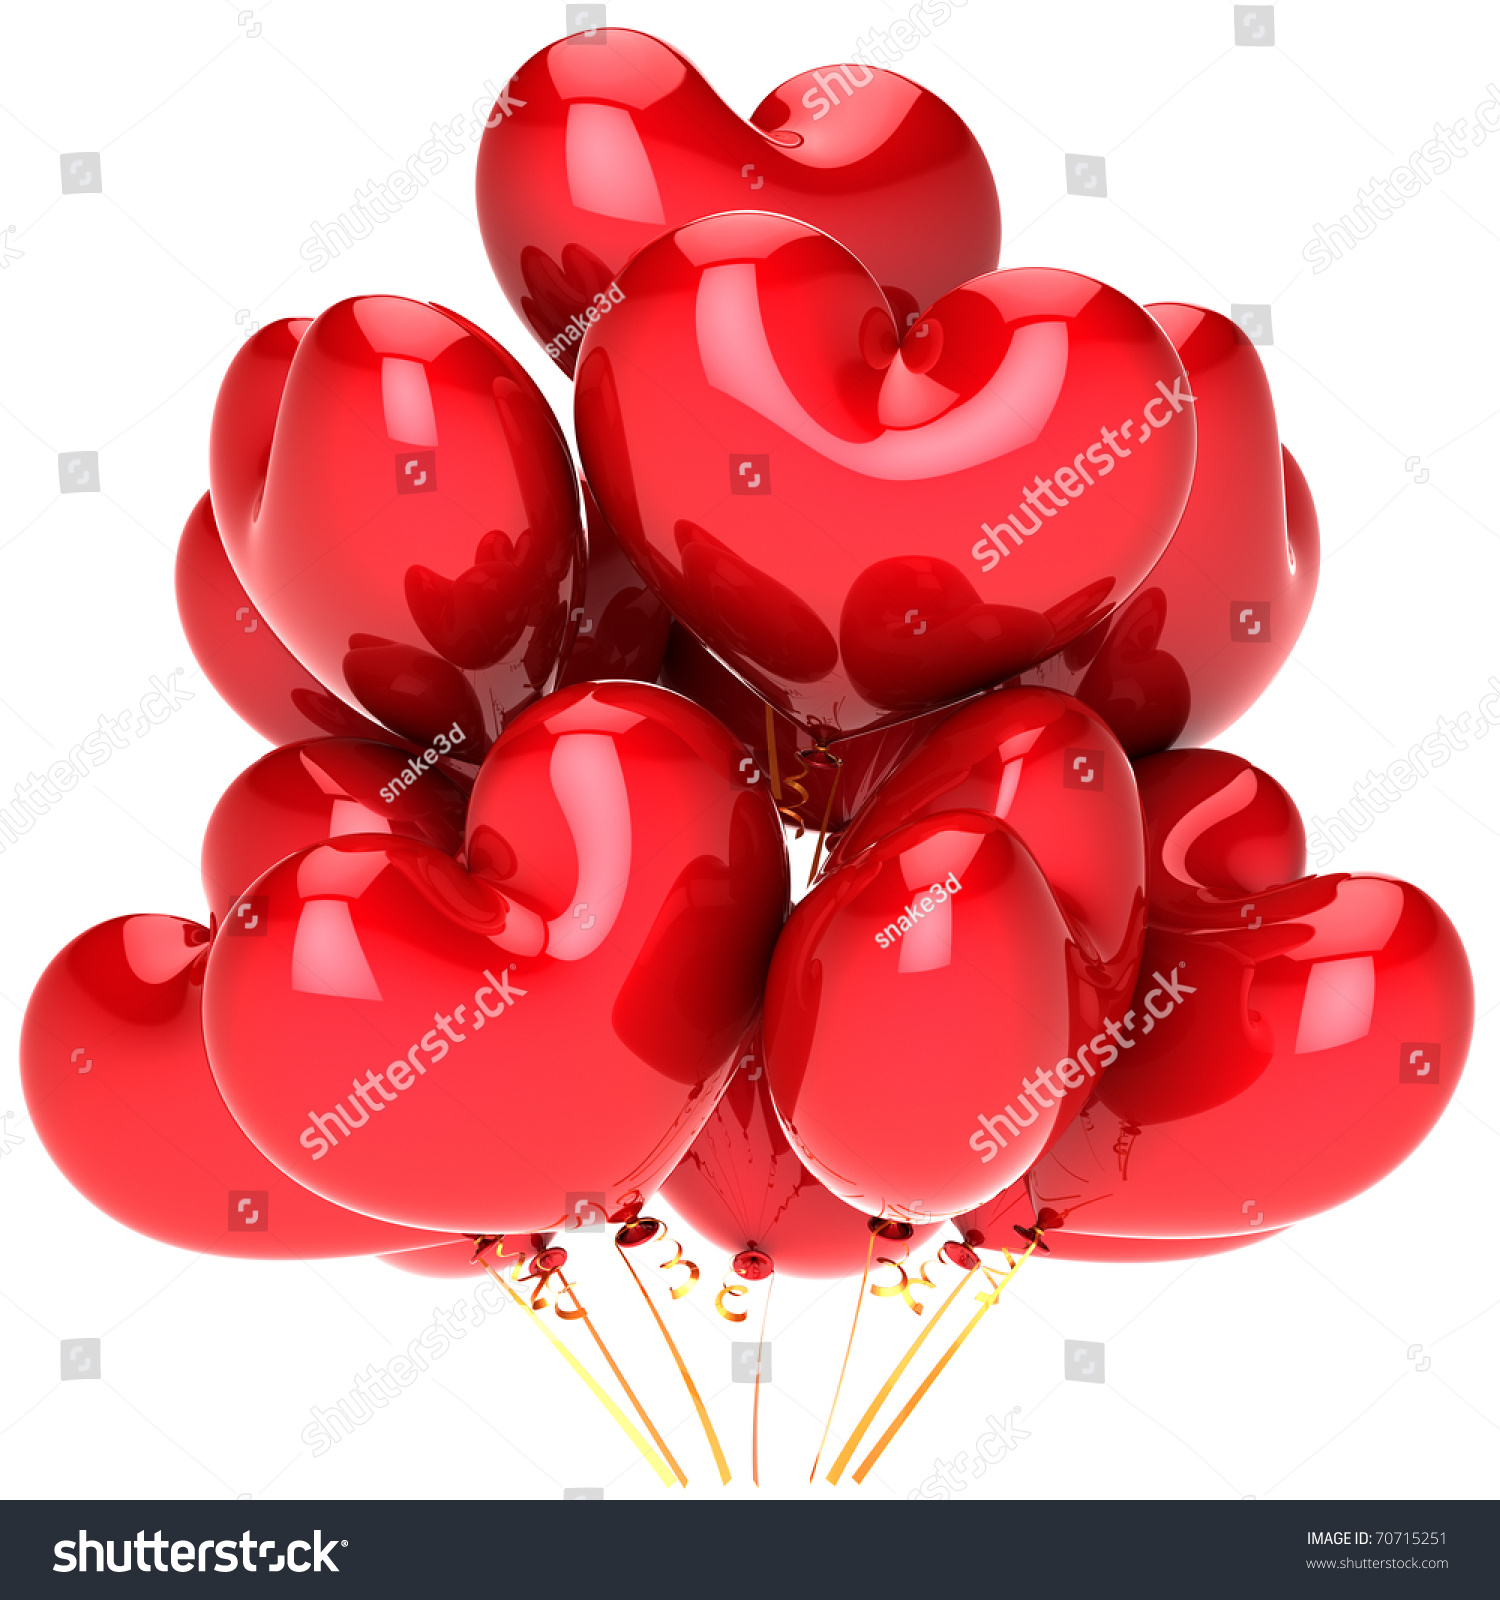 Party balloons red valentines day 14 stock illustration for Balloon decoration for valentines day